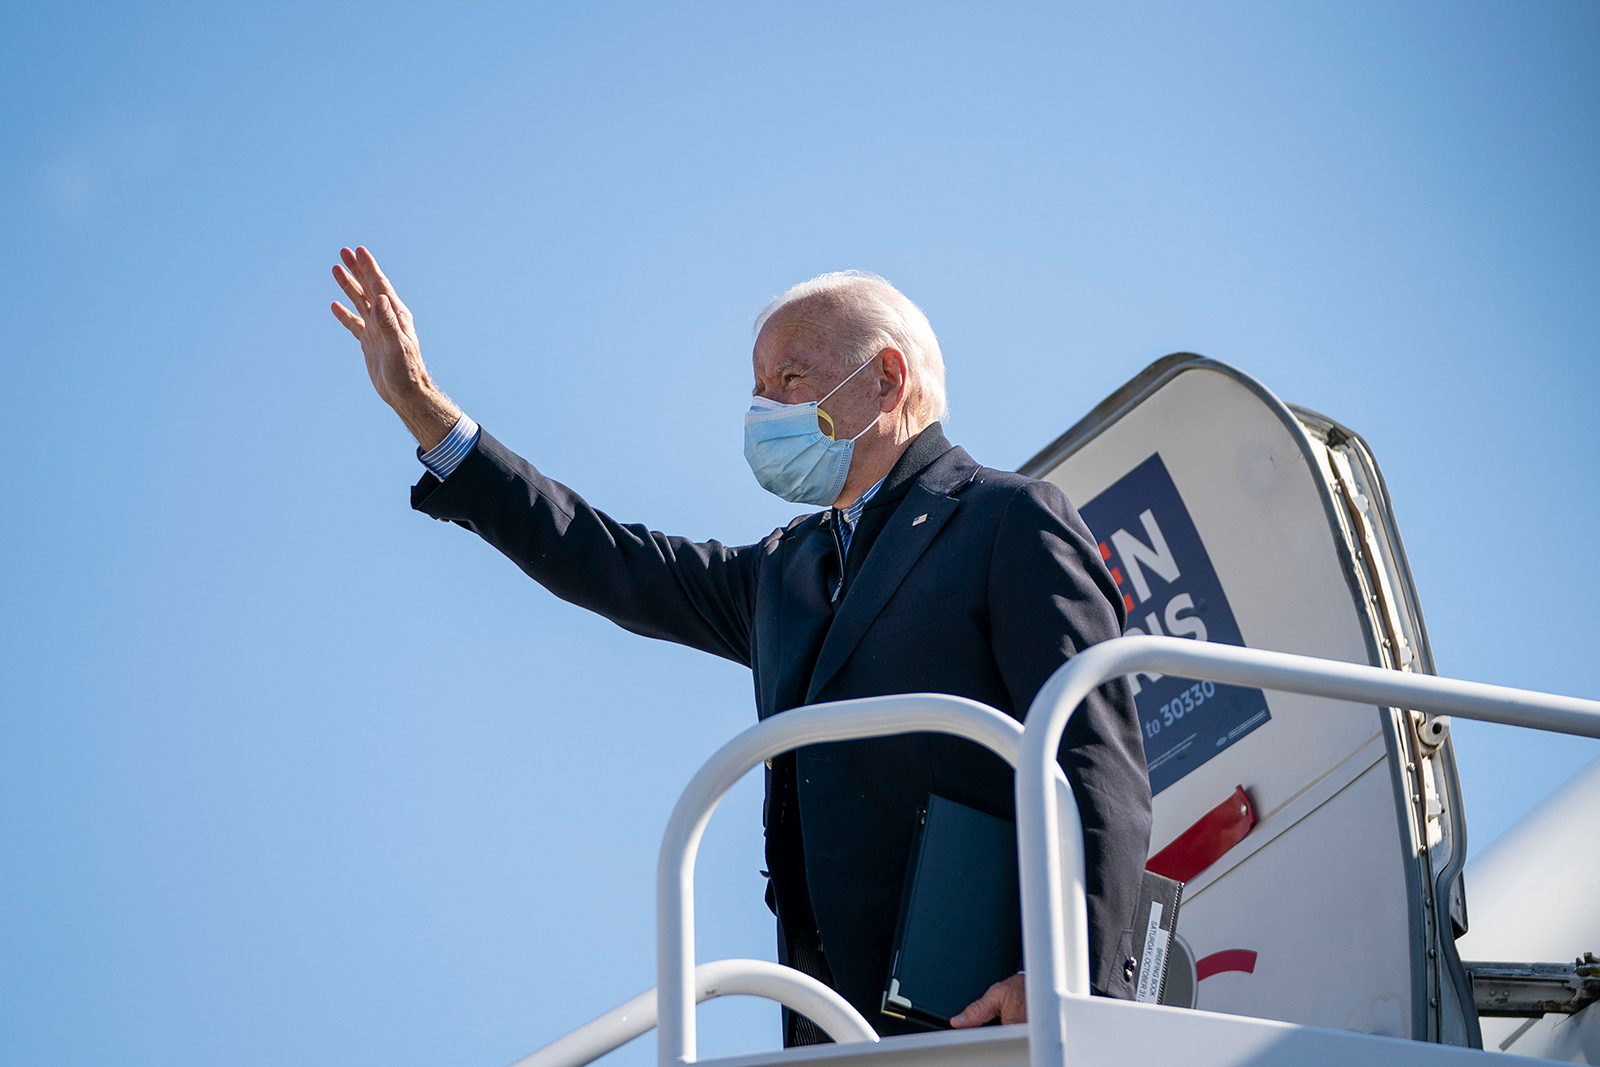 Democratic presidential nominee Joe Biden boards his campaign plane at New Castle Airport on October 31, in New Castle, Delaware.